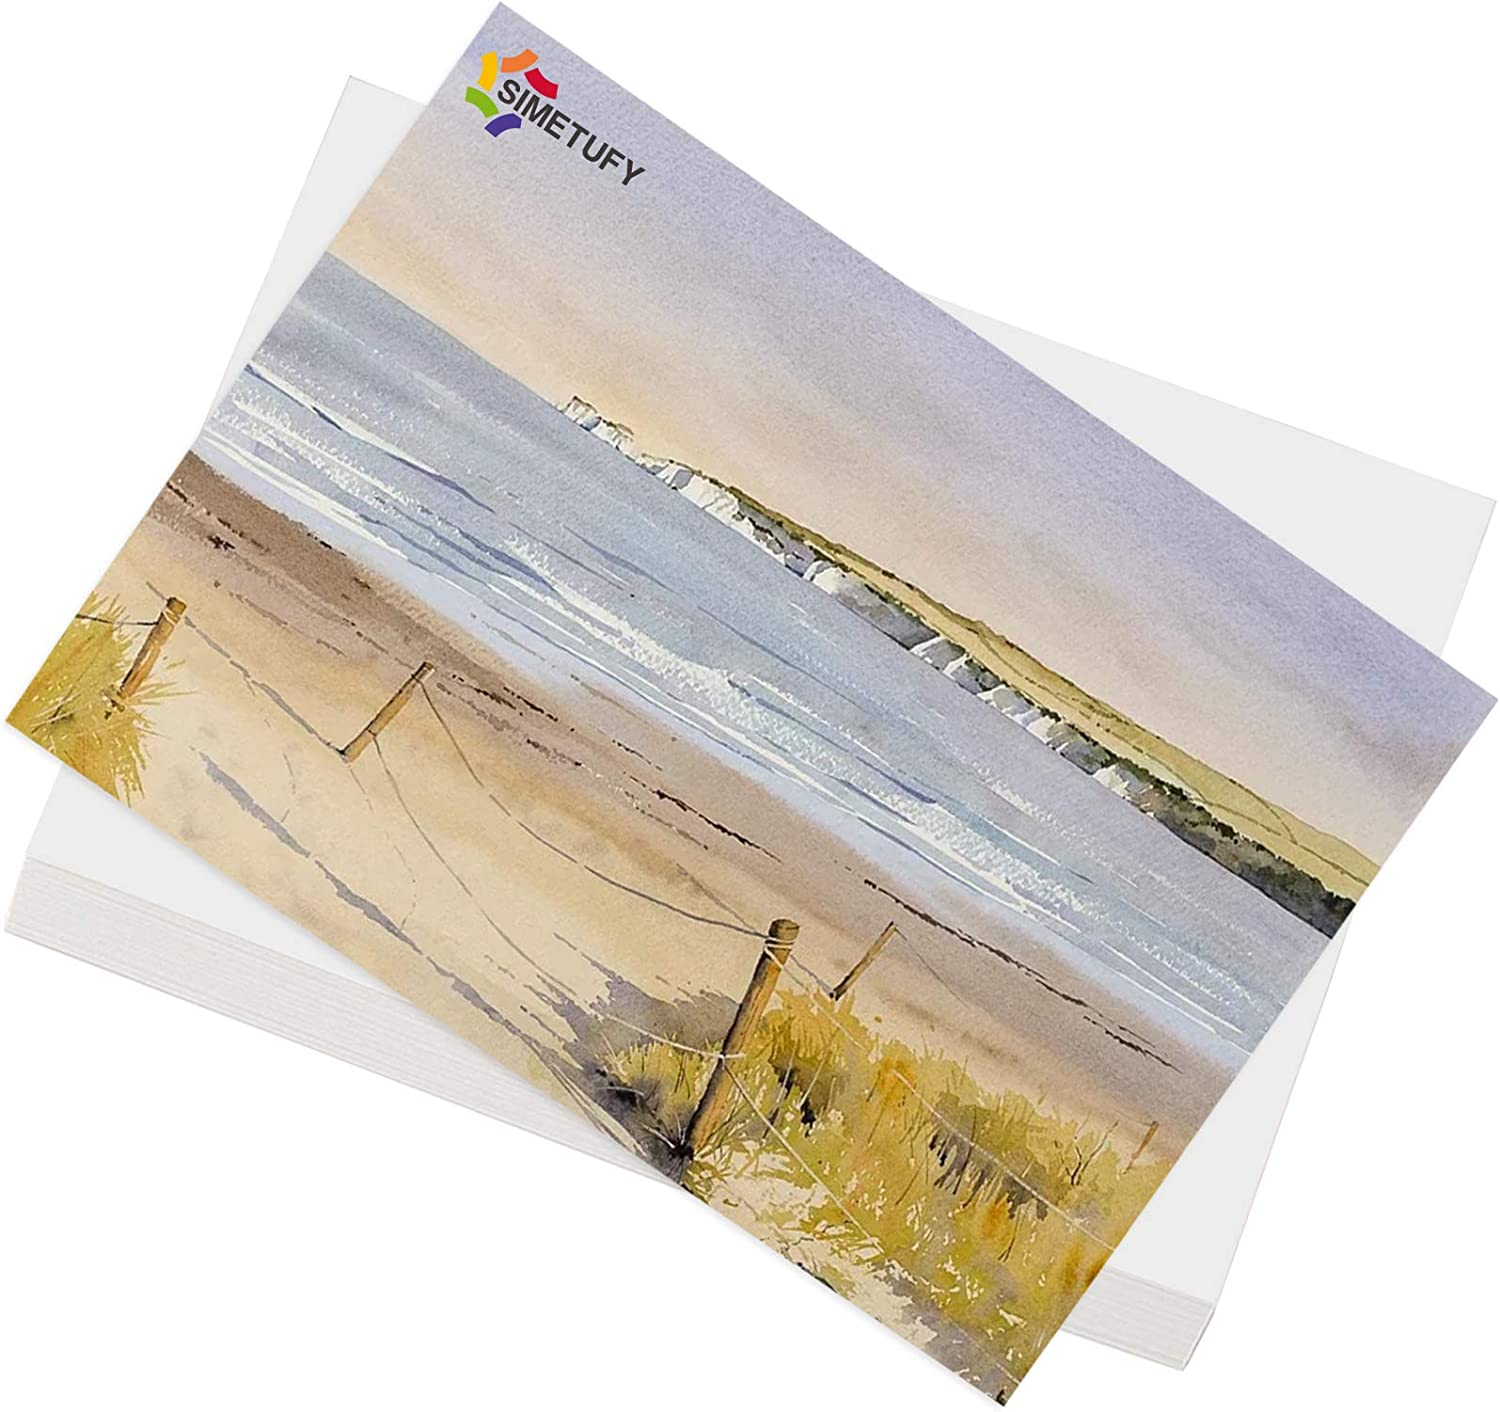 Superise 45 Sheets Painting Shipping included Paper Watercolor Tulsa Mall 8K 15.35